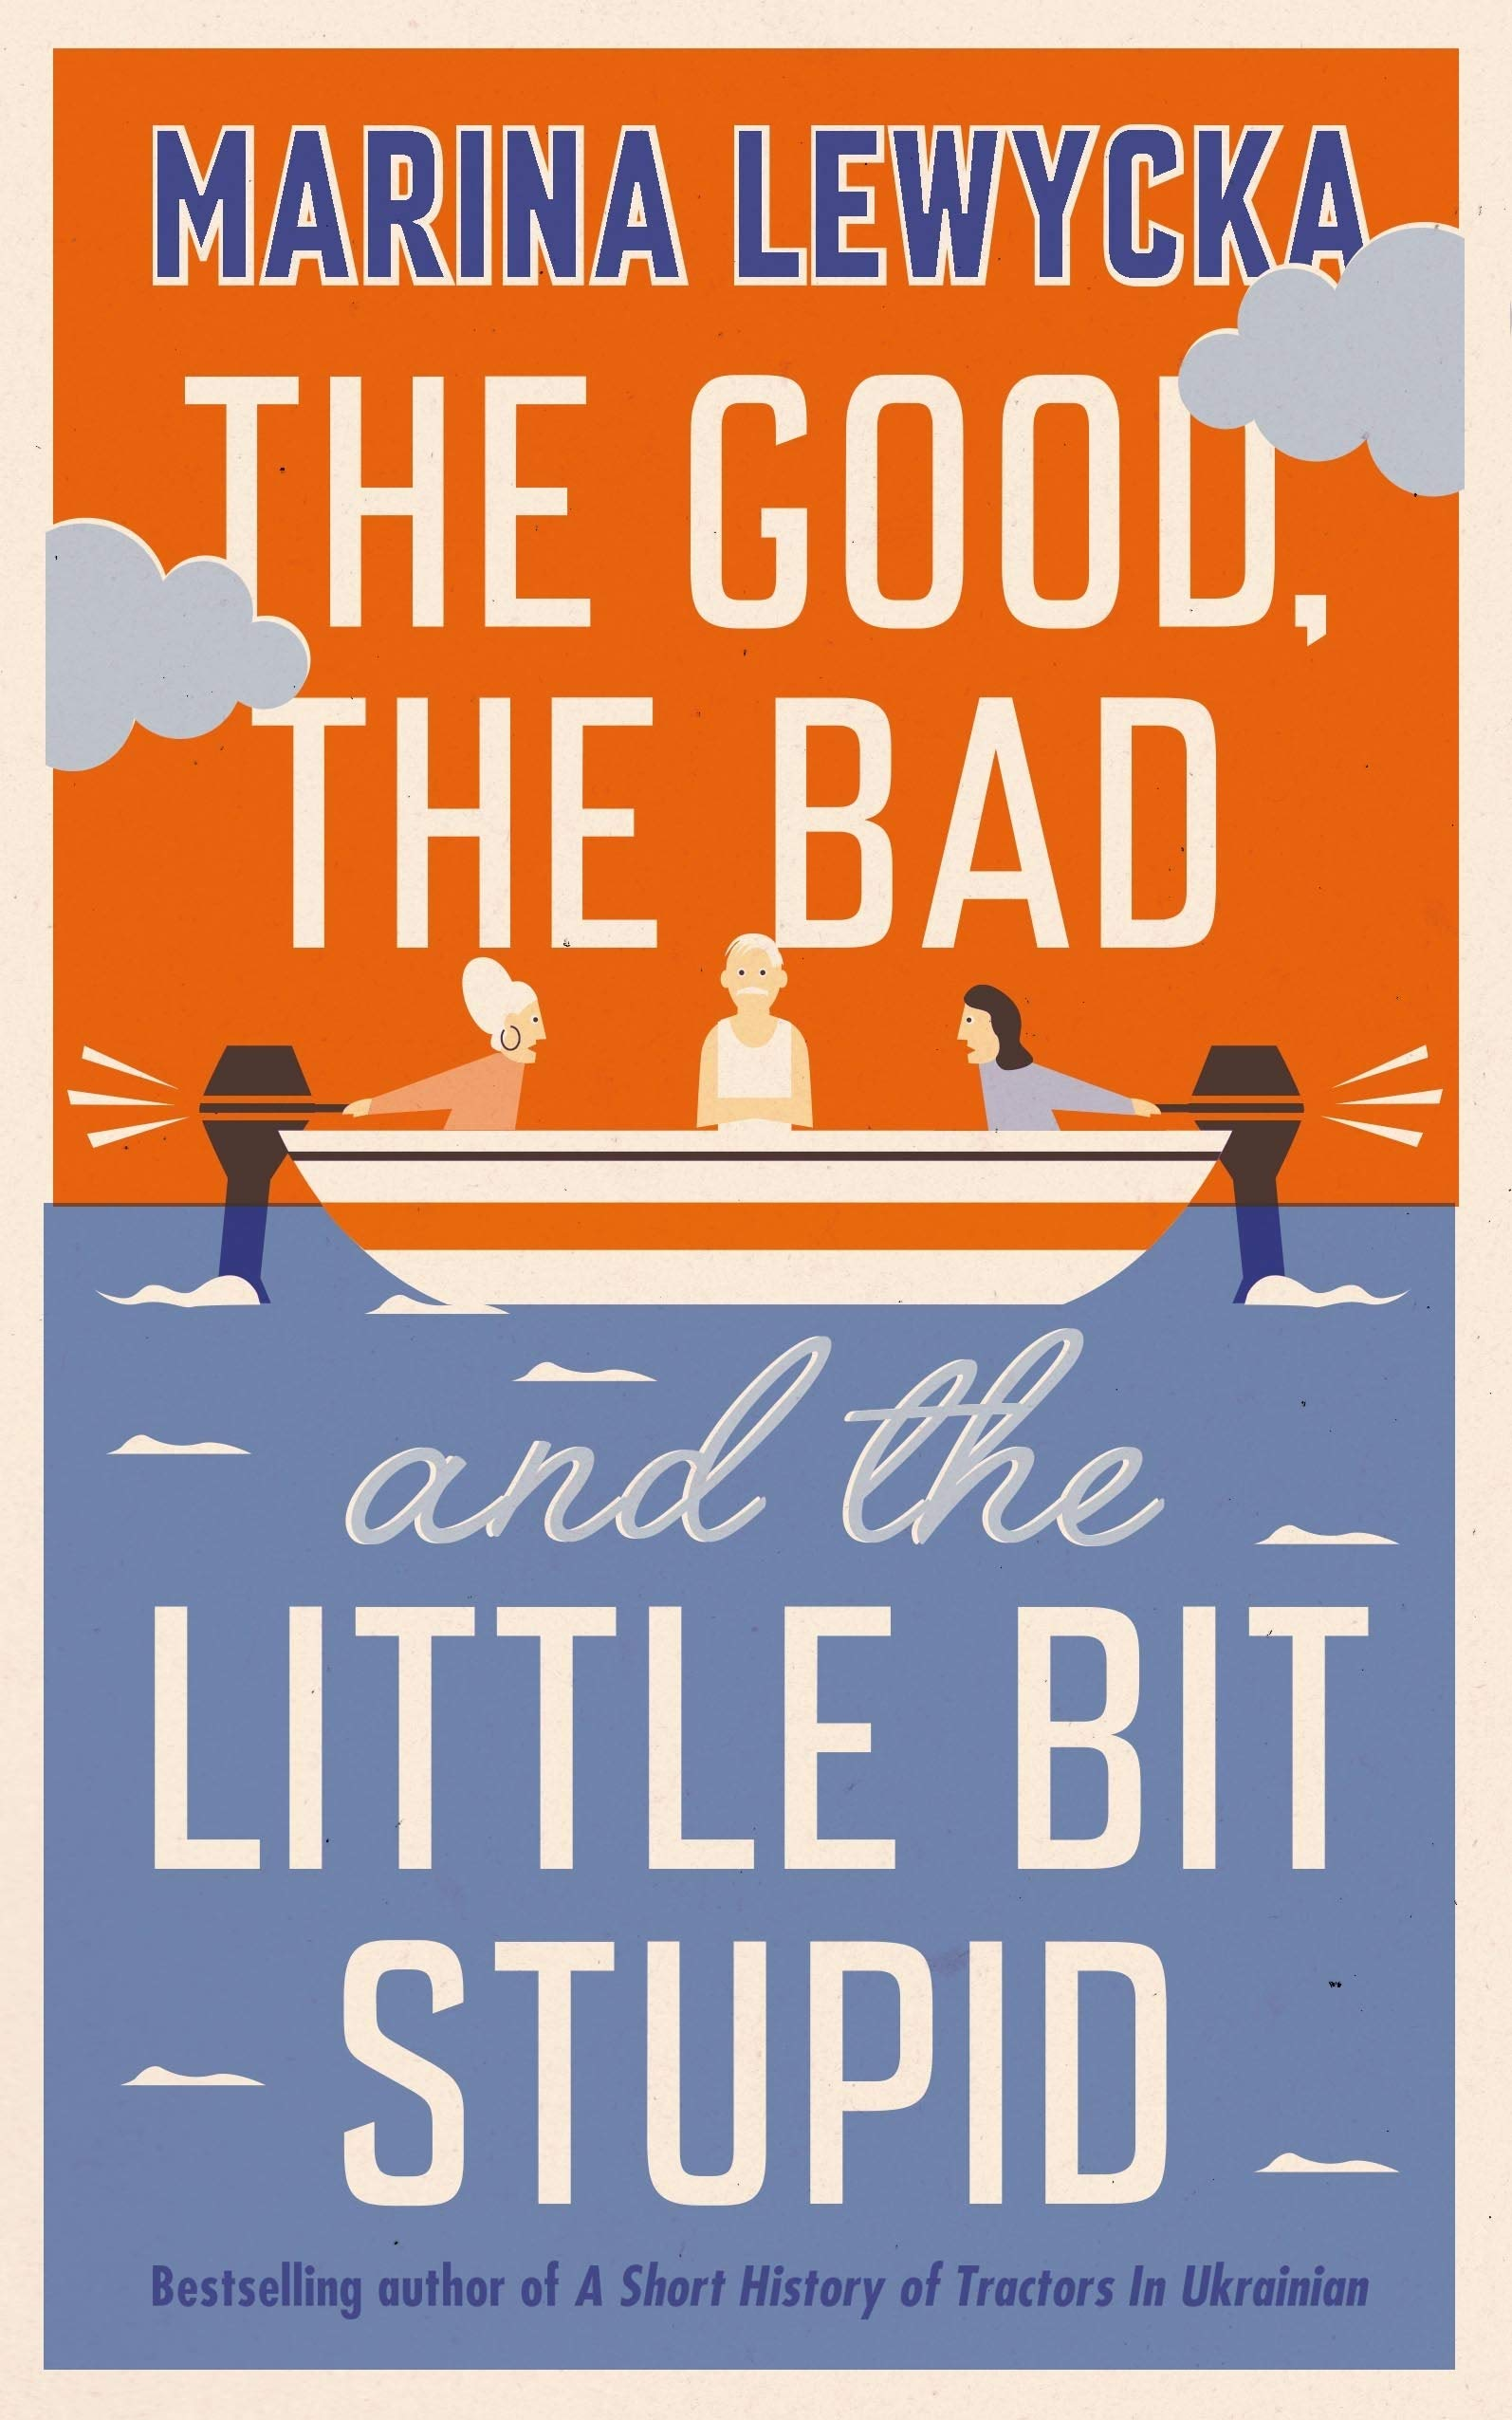 The Good the Bad and the Little Bit Stupid